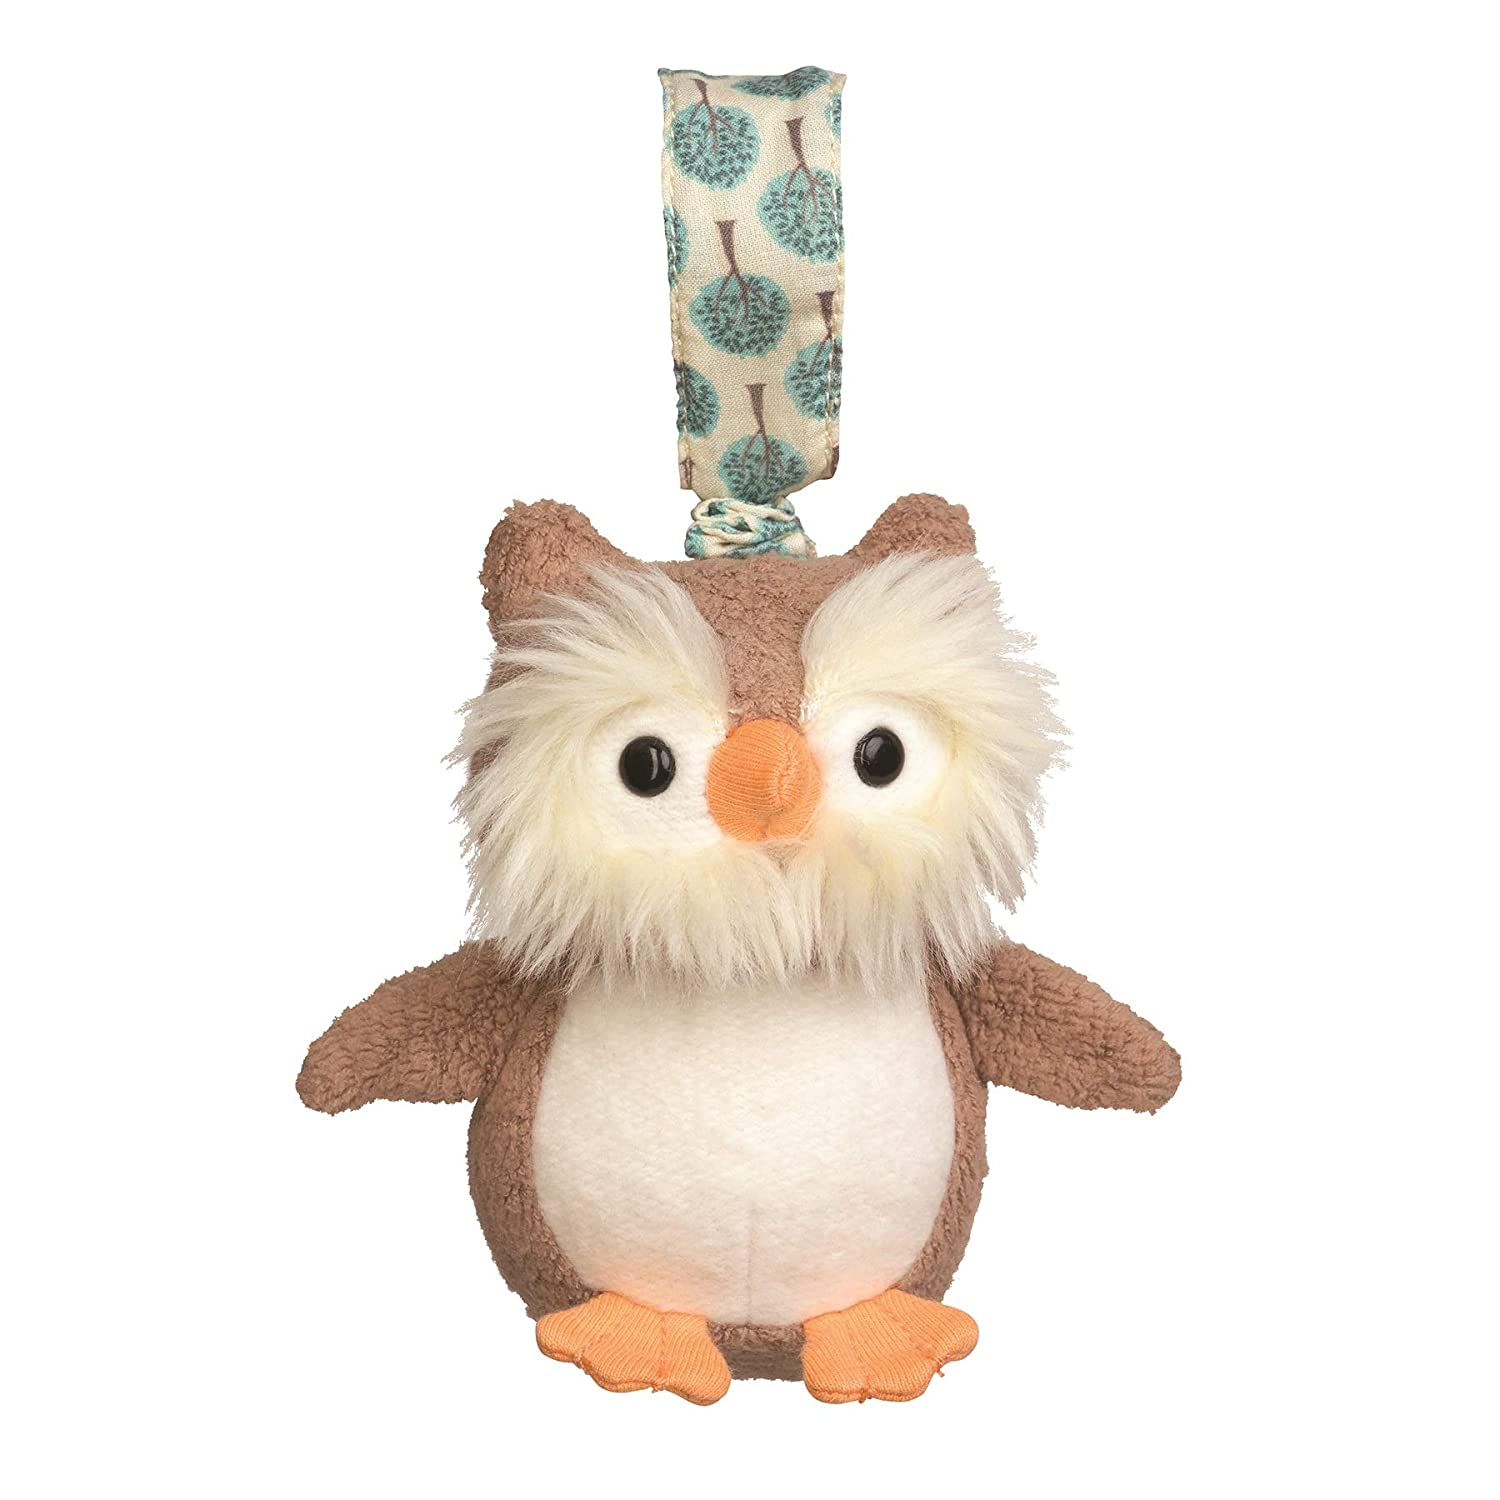 Apple Park Owl Stroller Baby Toy - for Newborns, Infants, Toddlers - Hypoallergenic, 100% Organic Cotton